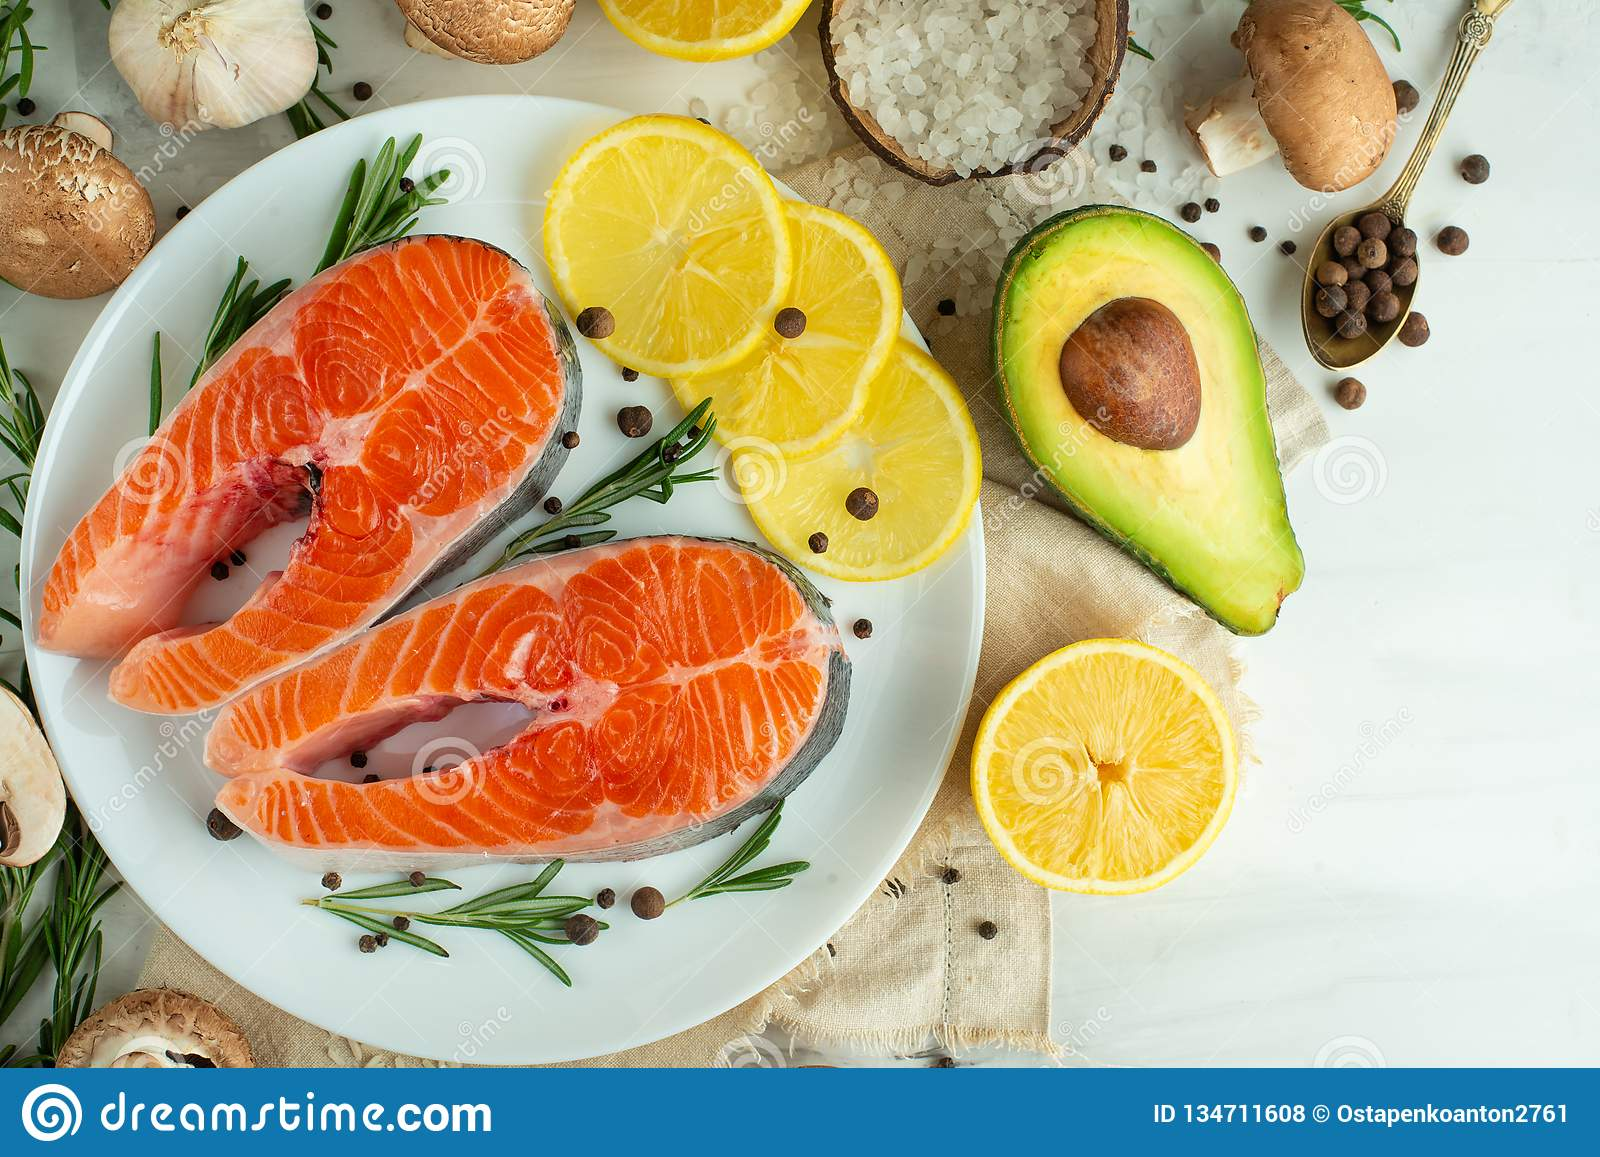 Delicious fresh fish steaks, salmon, trout. With vegetables, deli, vegan food, diet and Dotex